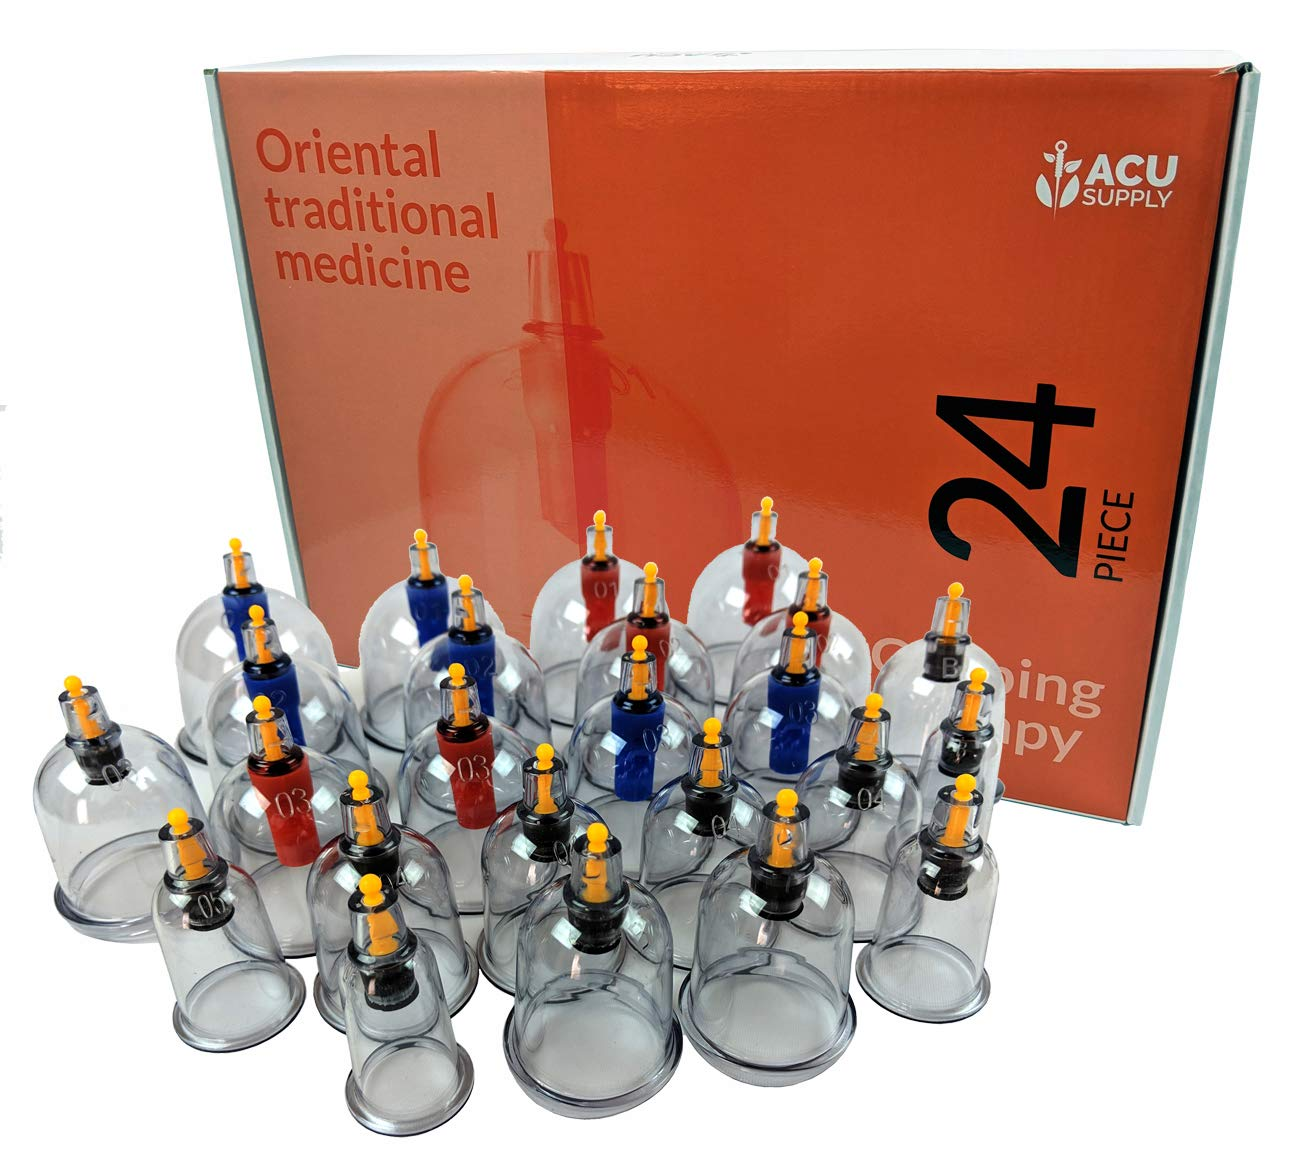 24 Piece Vacuum Cupping Therapy Set - Vacuum Cupping Set for Home Use - Cellulite Cups with Self Hand Pump- for Natural Pain and Stress Relief